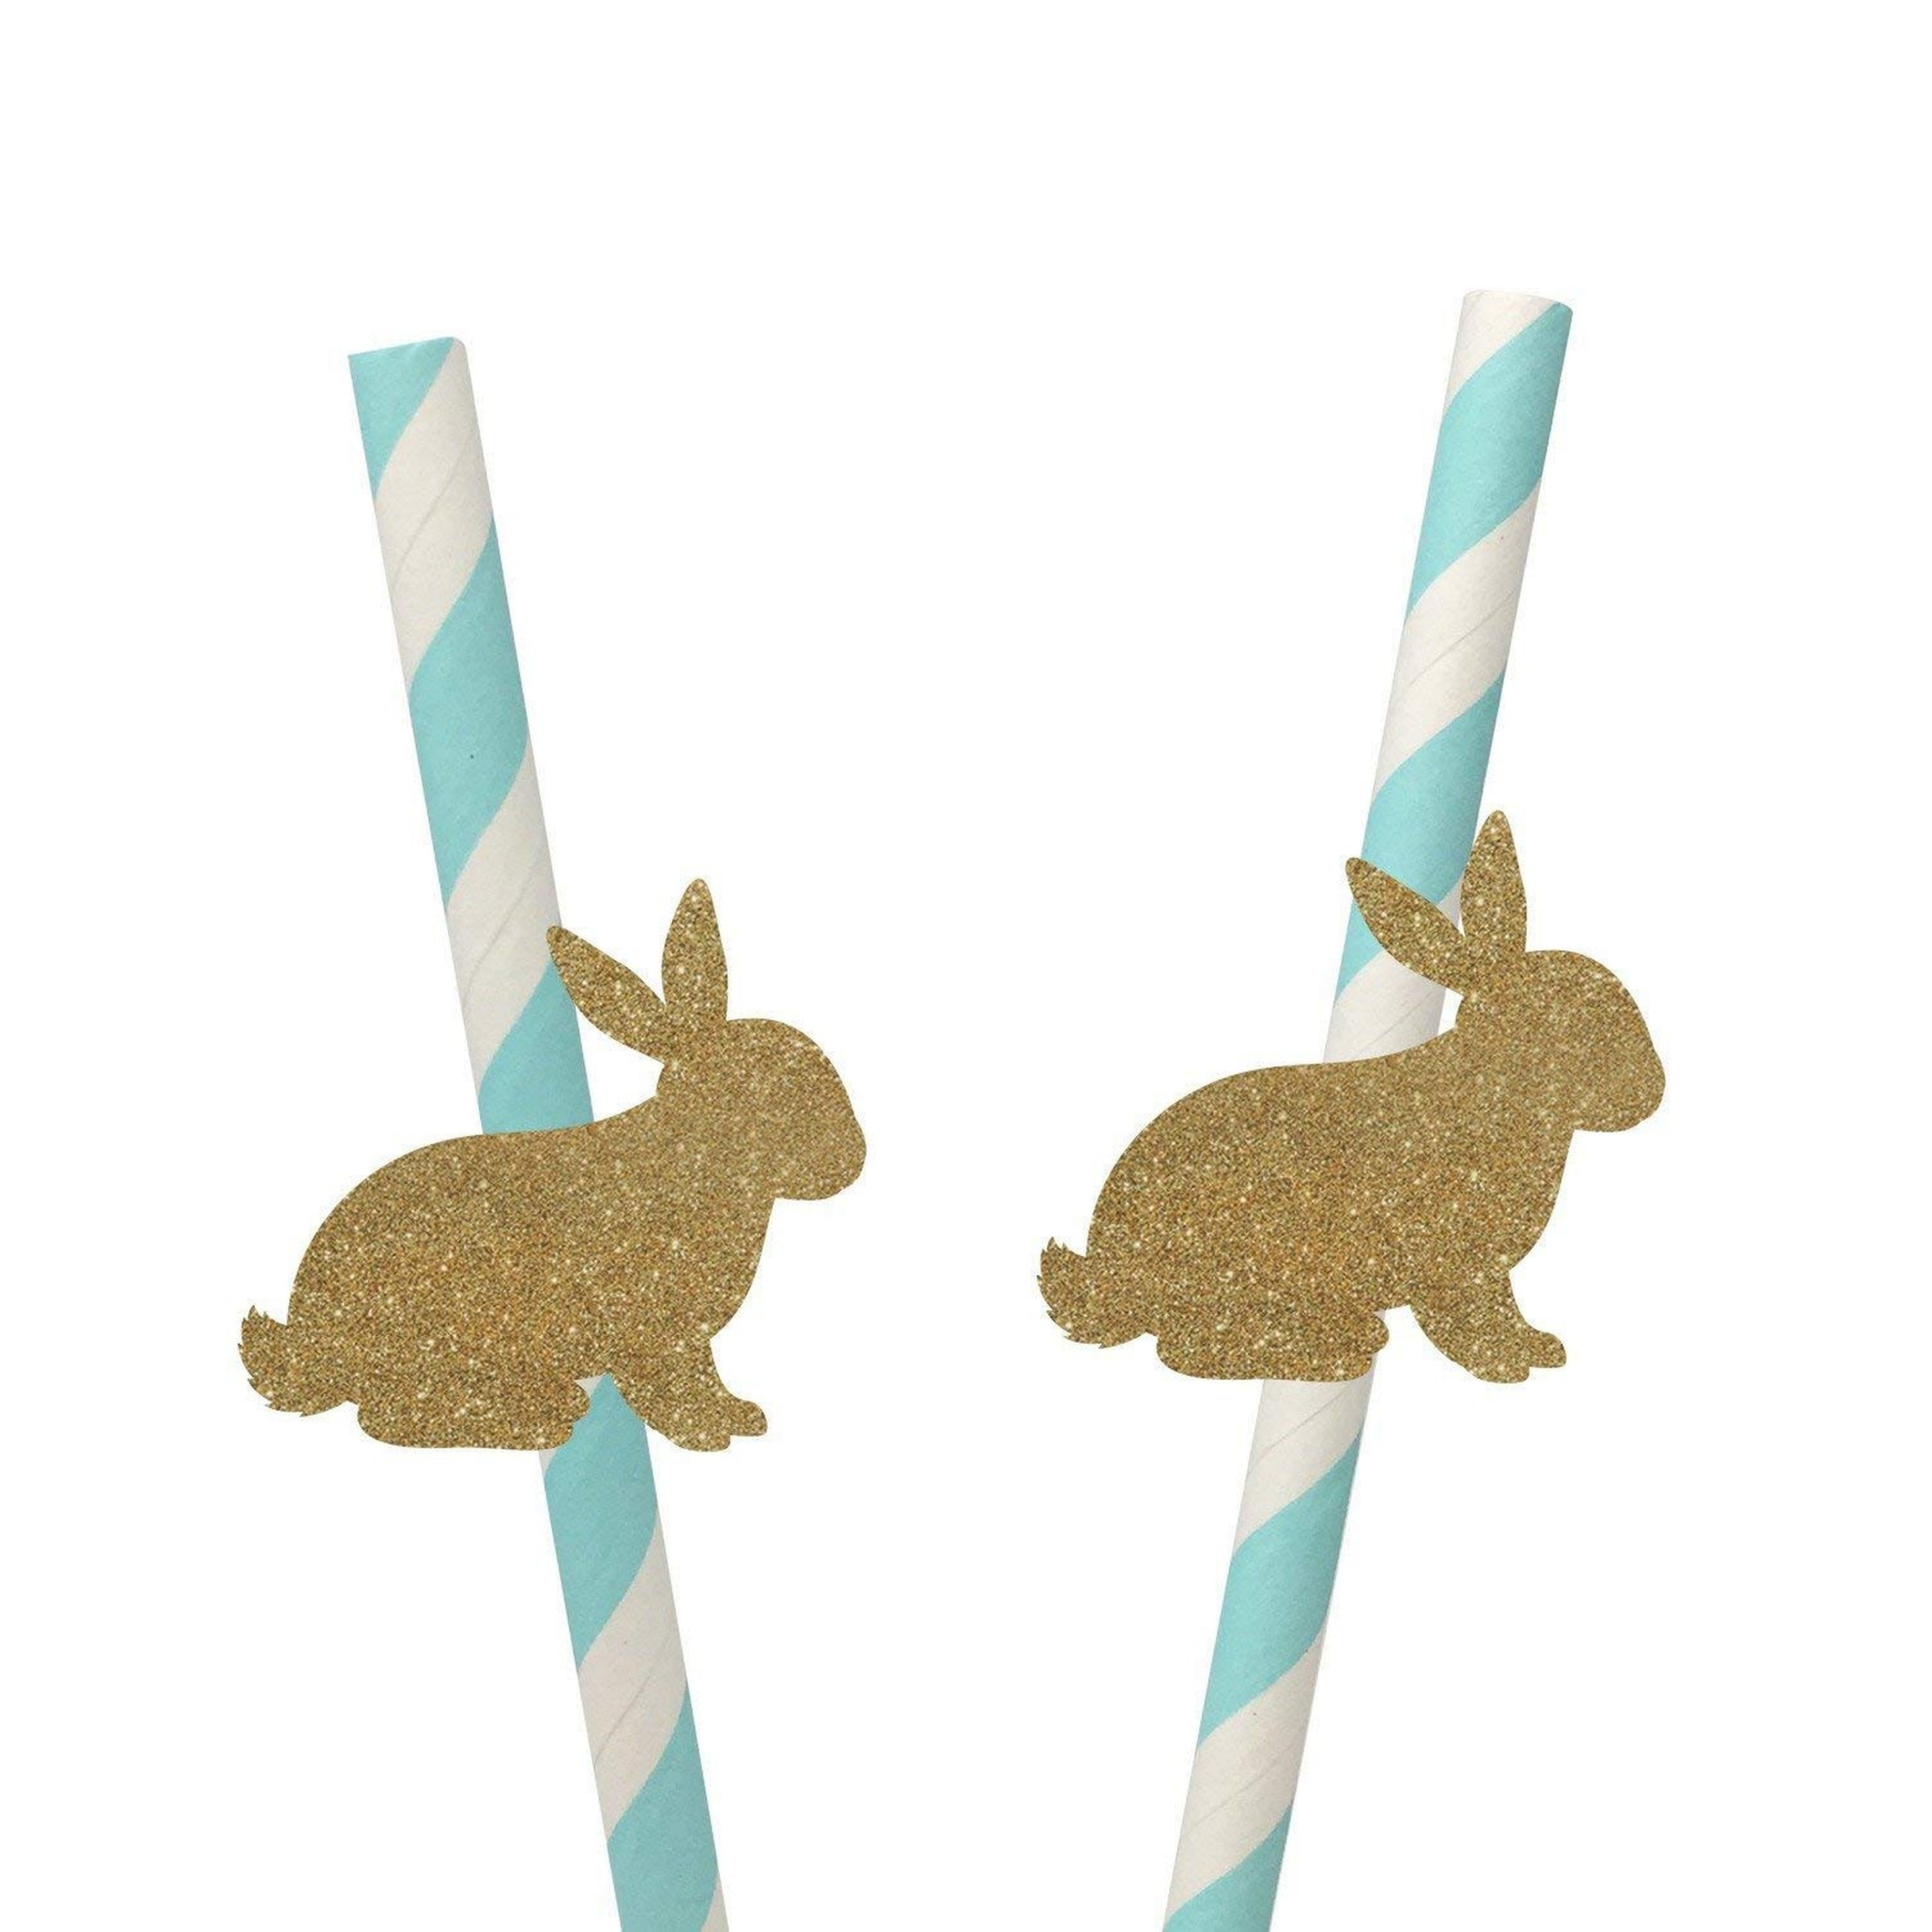 Bunny Straws Amazon Handmade